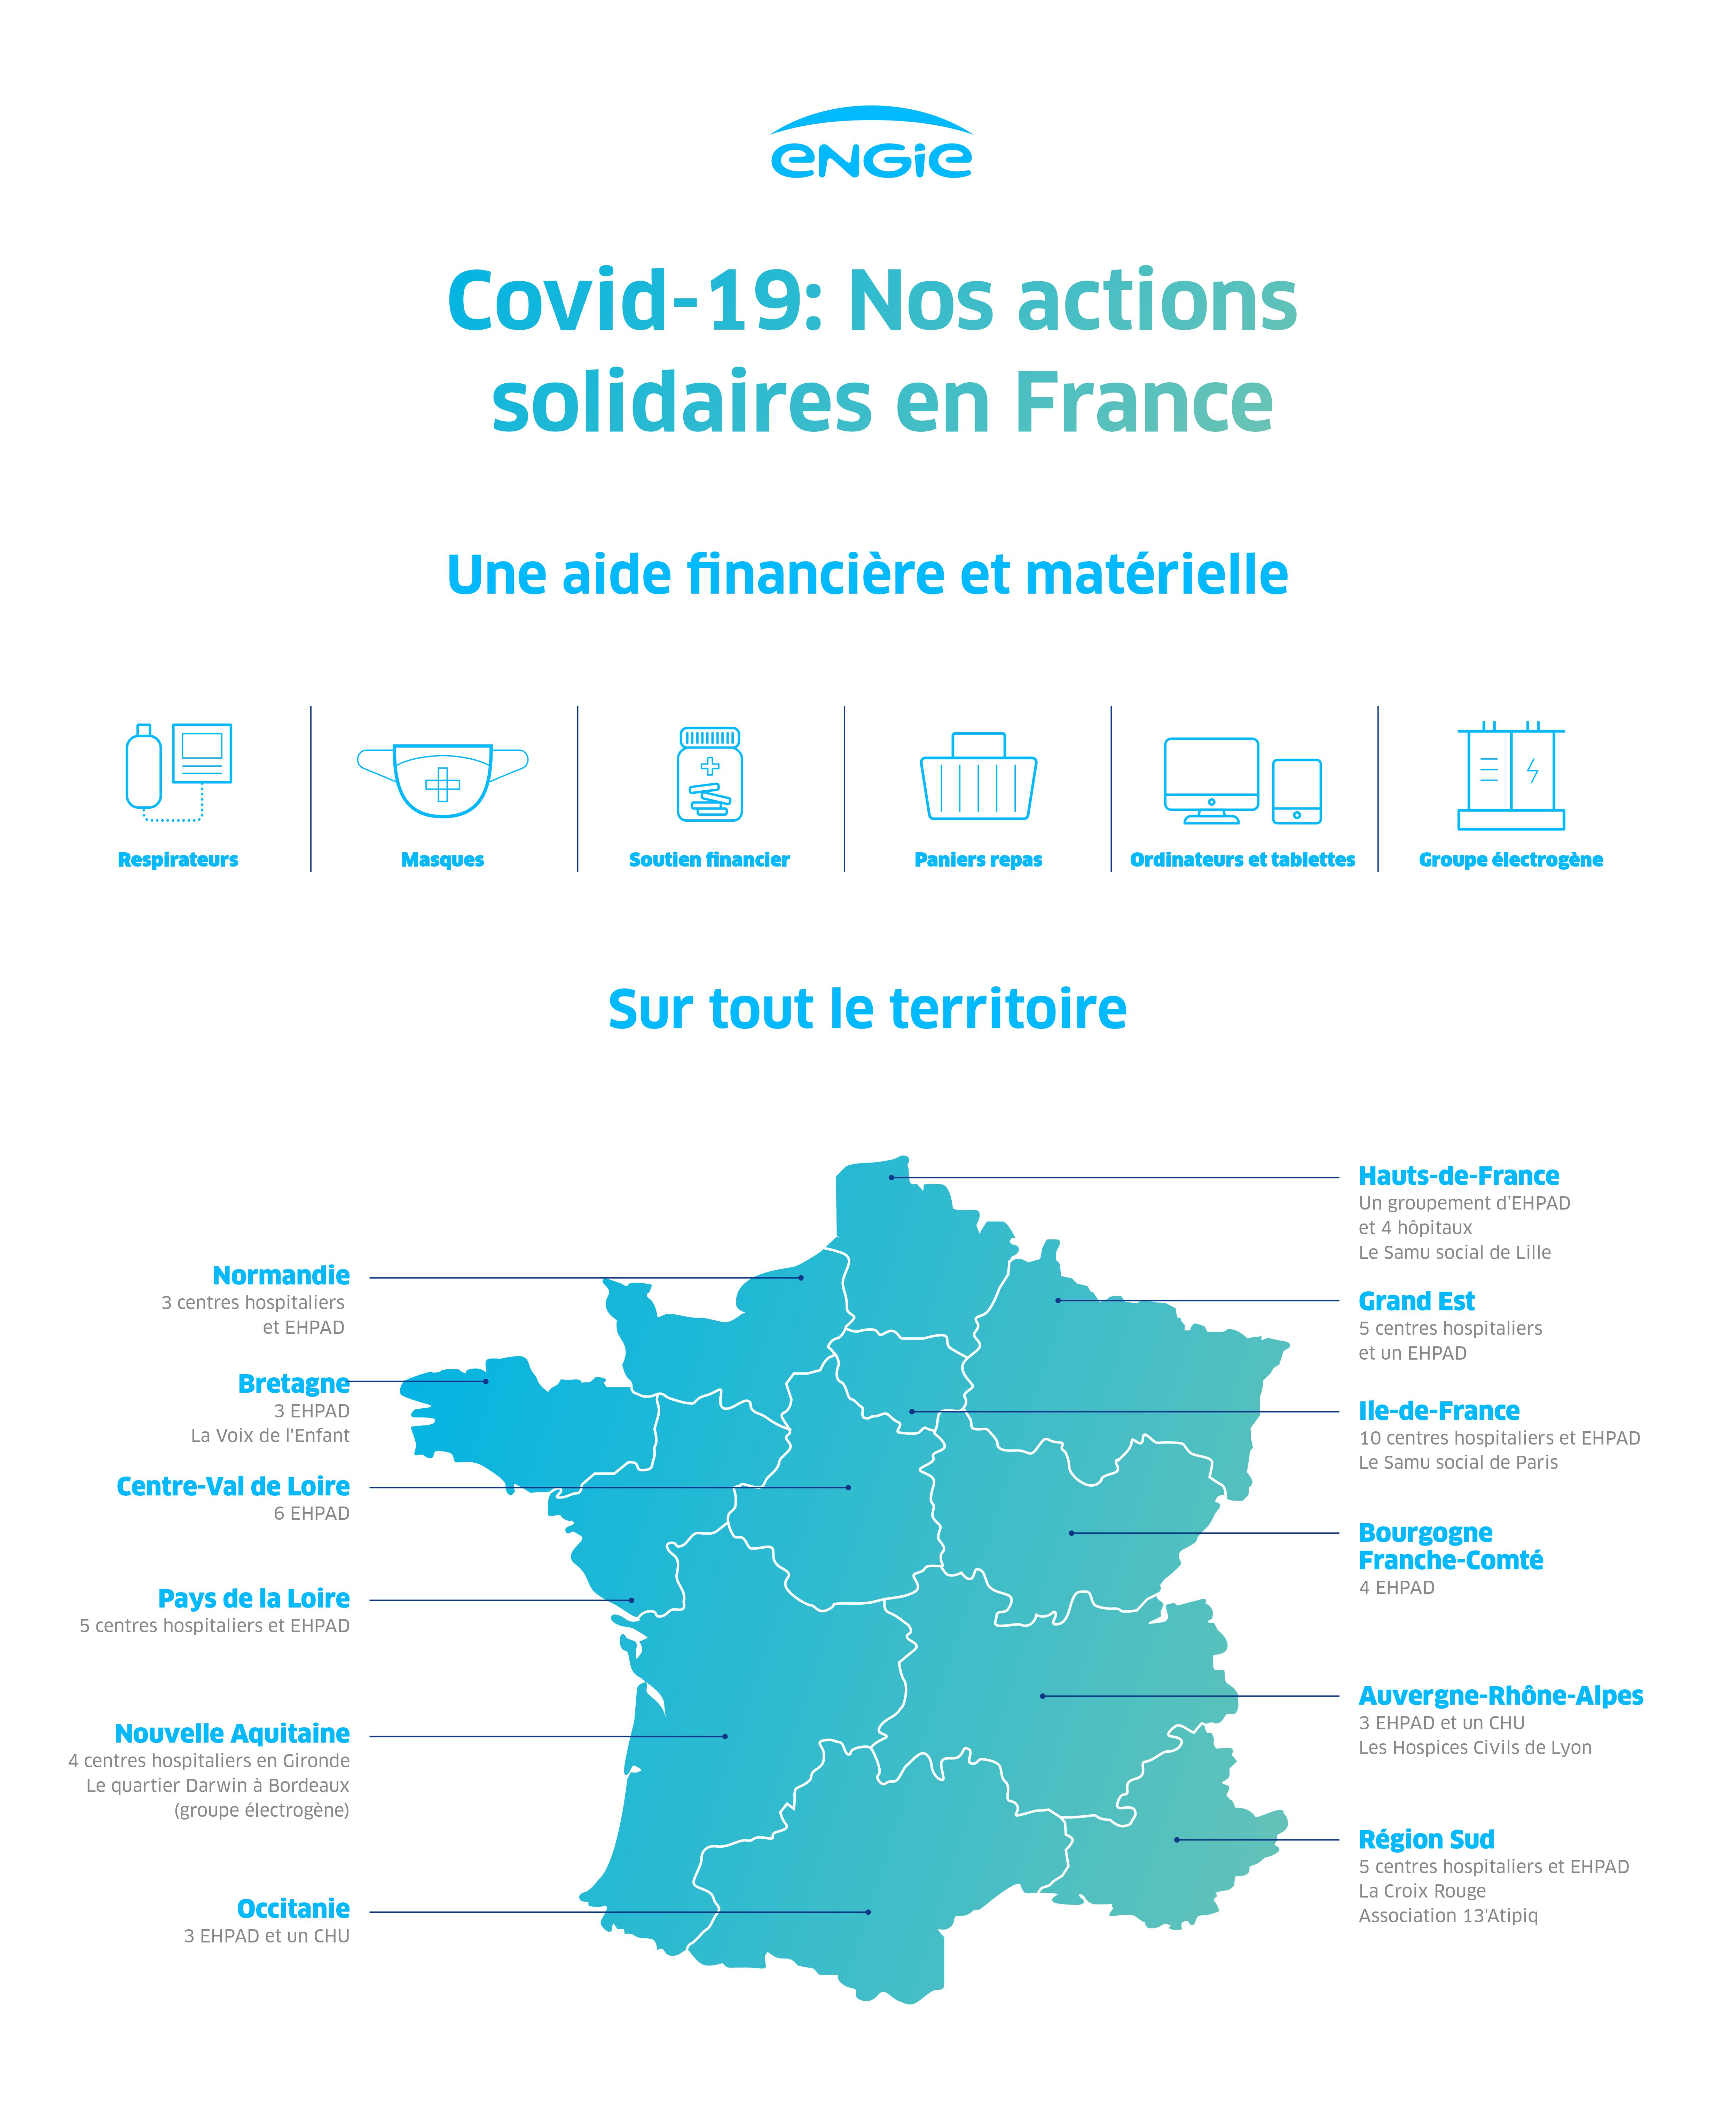 actions solidaires